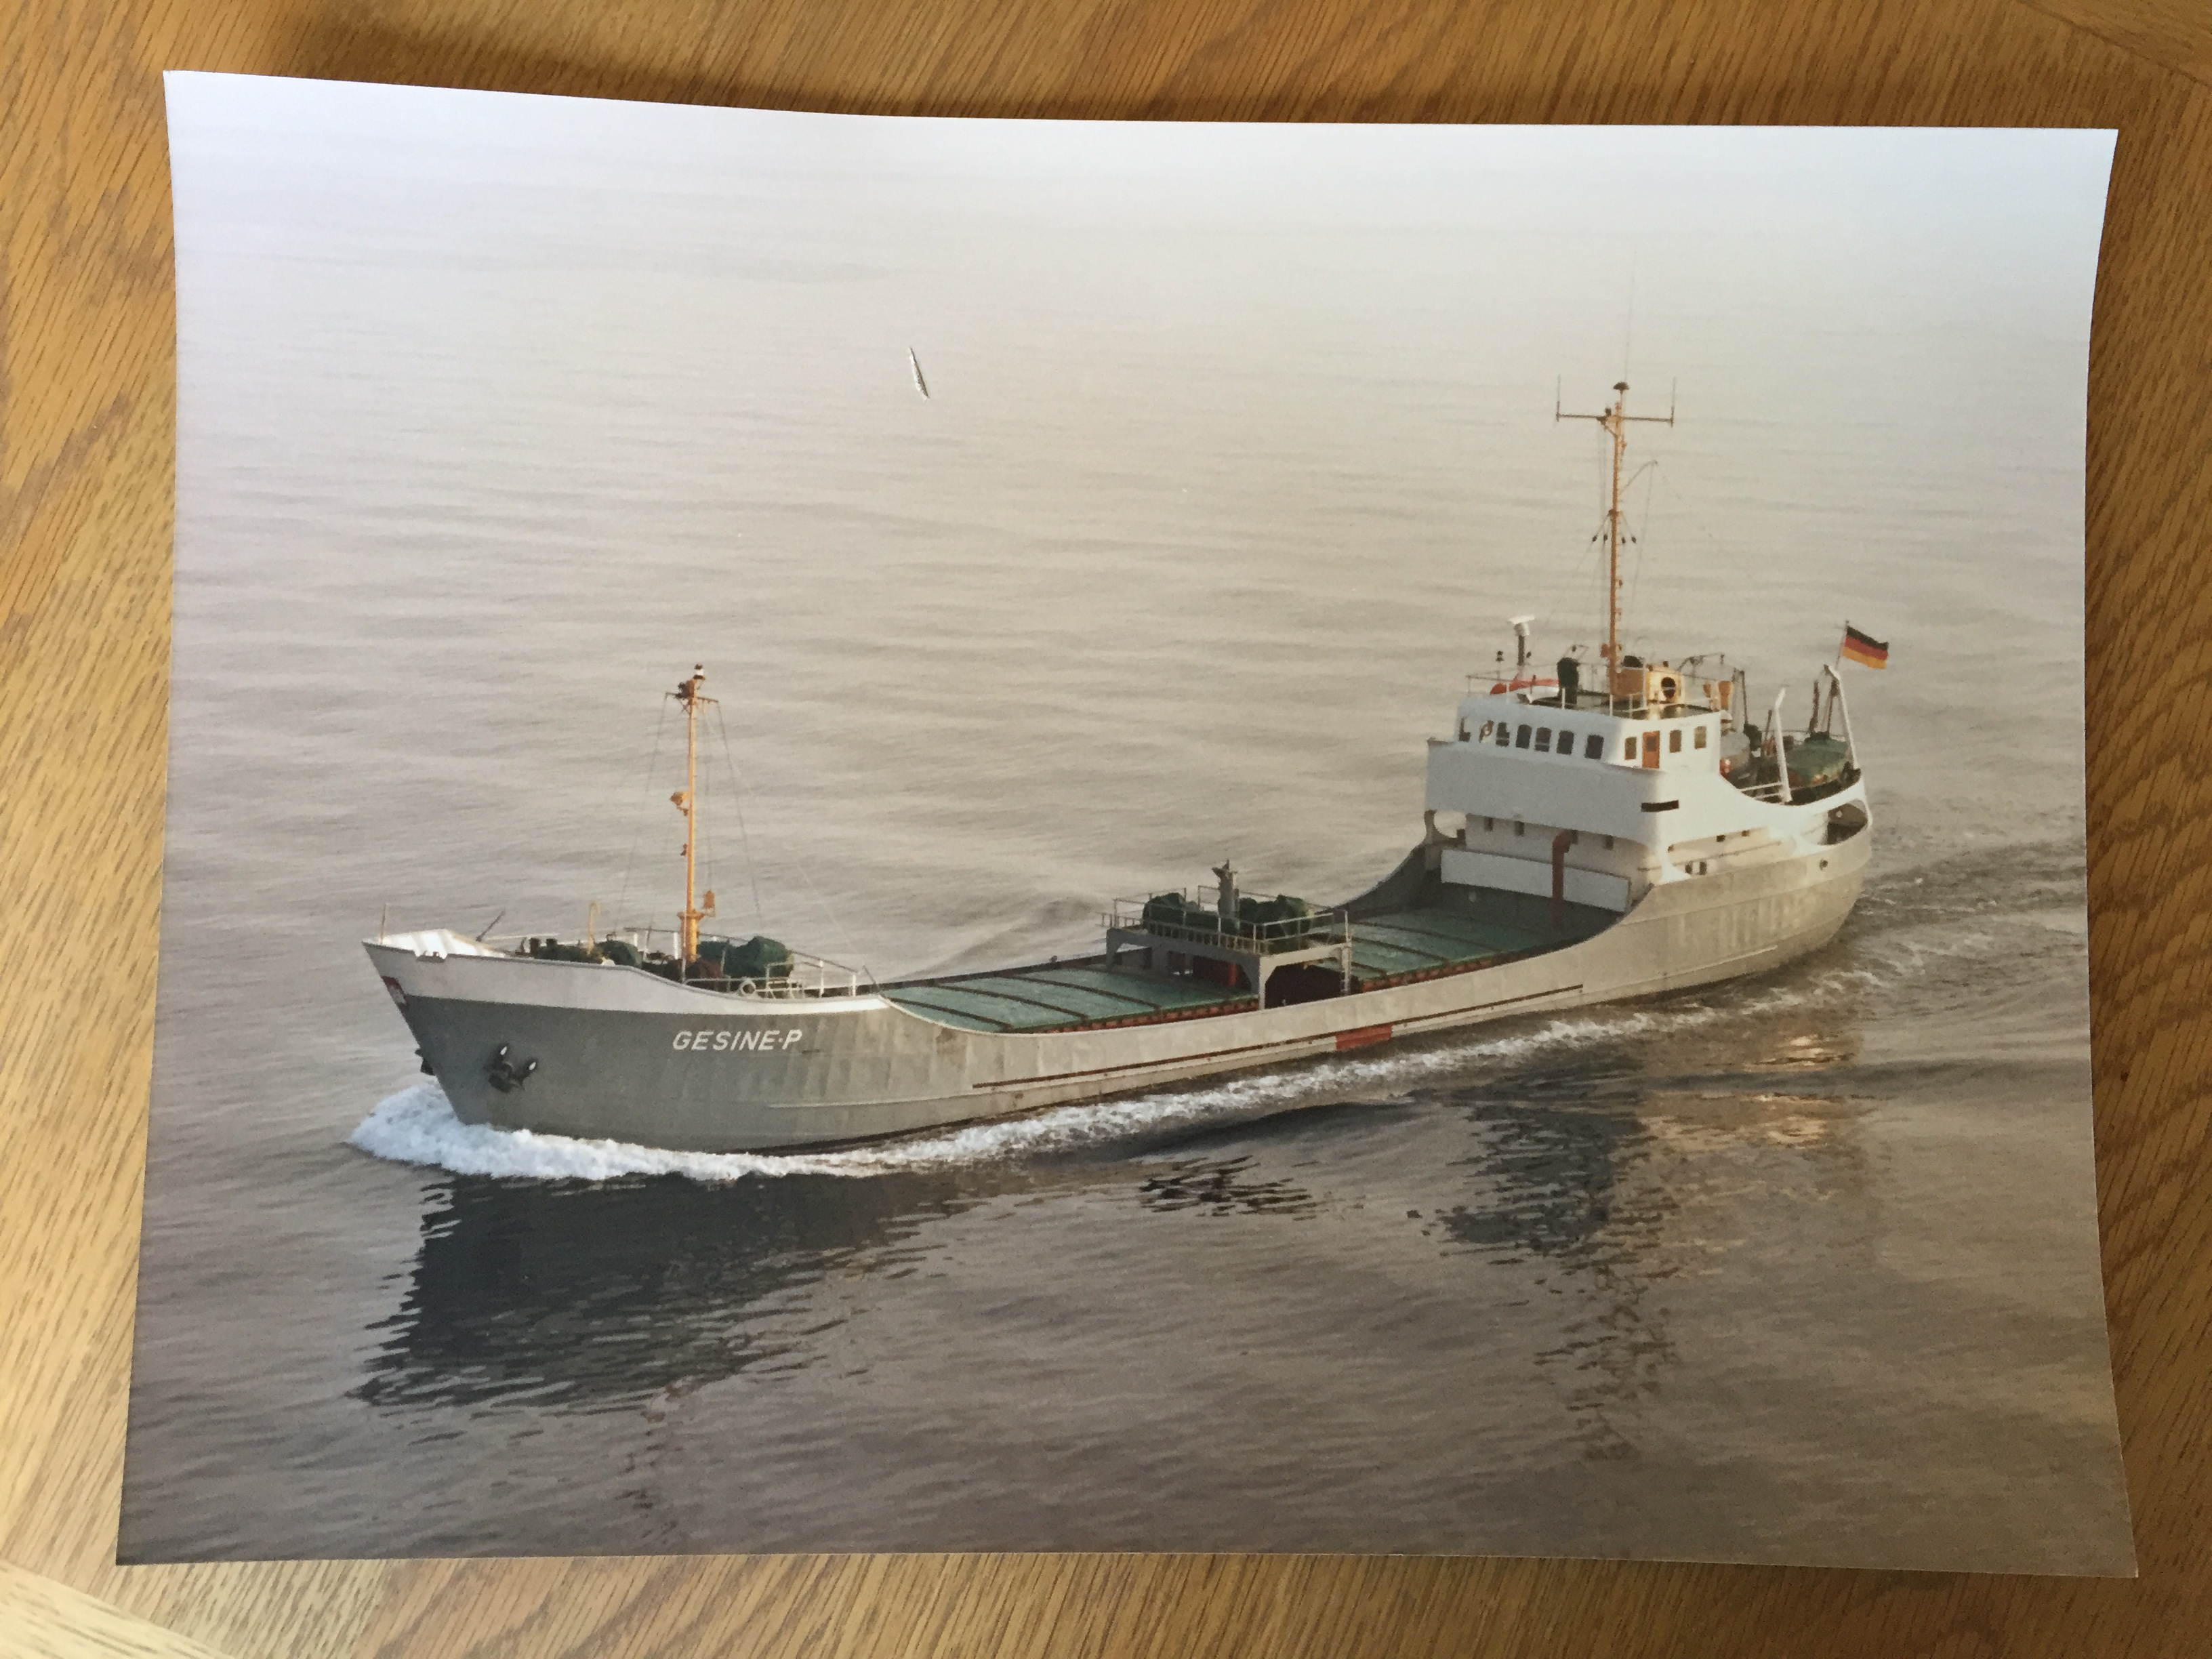 LARGE SIZE COLOUR PHOTOGRAPH OF THE CONTAINER VESSEL GESINE P